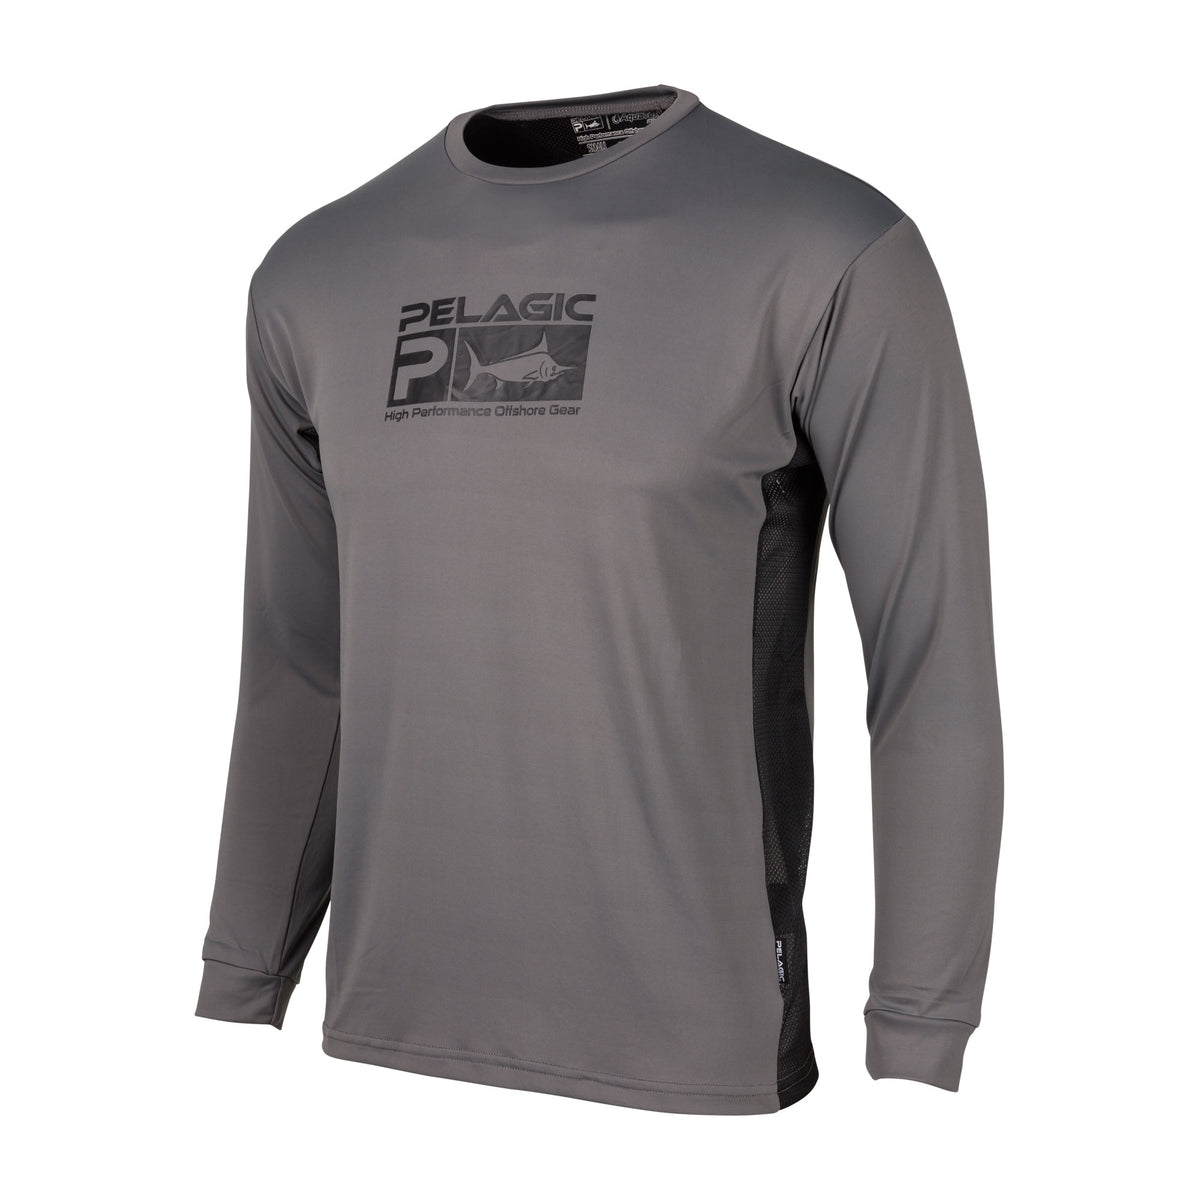 Aquatek Pro Performance Fishing Shirt Big Image - 1